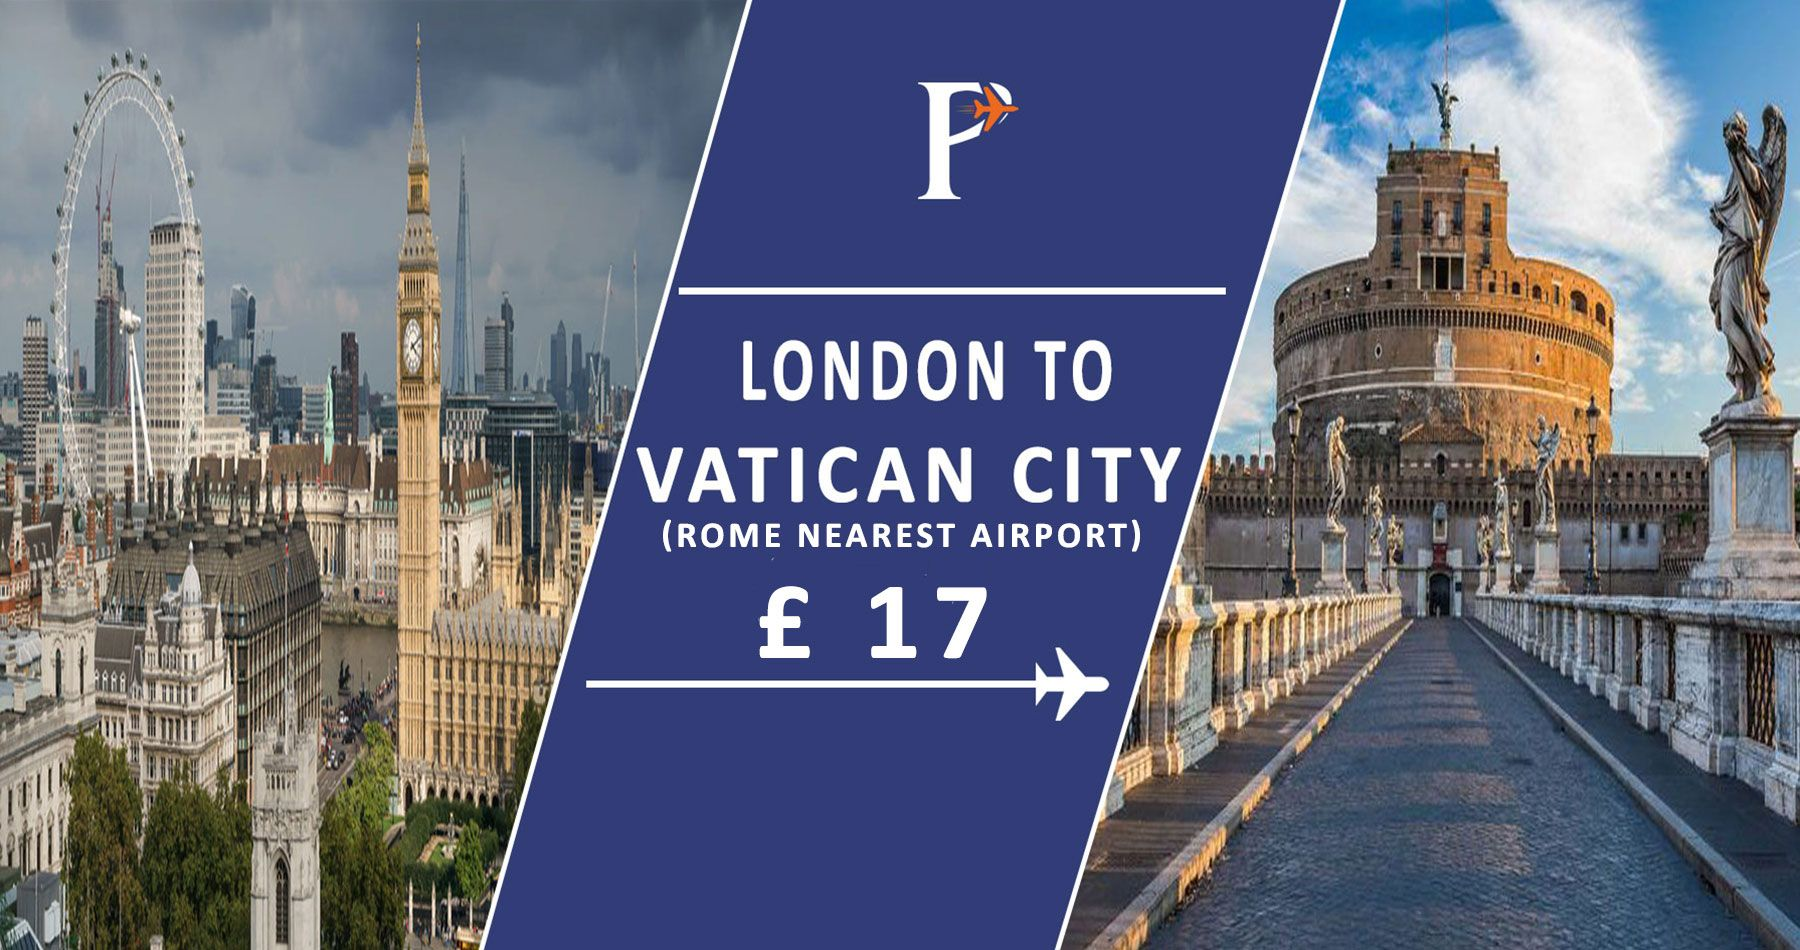 offers cheap flights to Vatican City (in